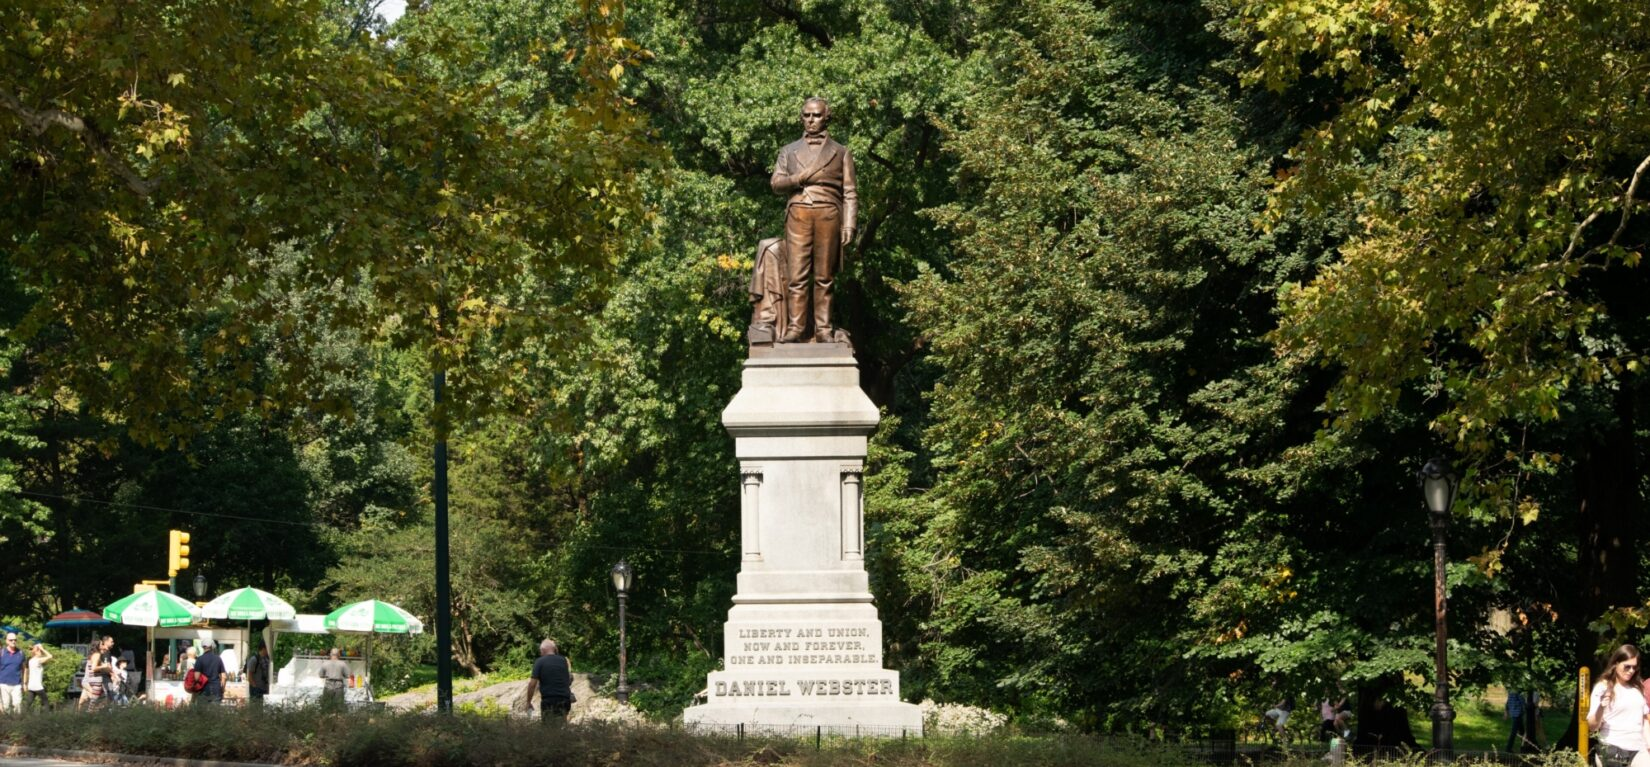 The bronze statue stands high on a noble pedestal